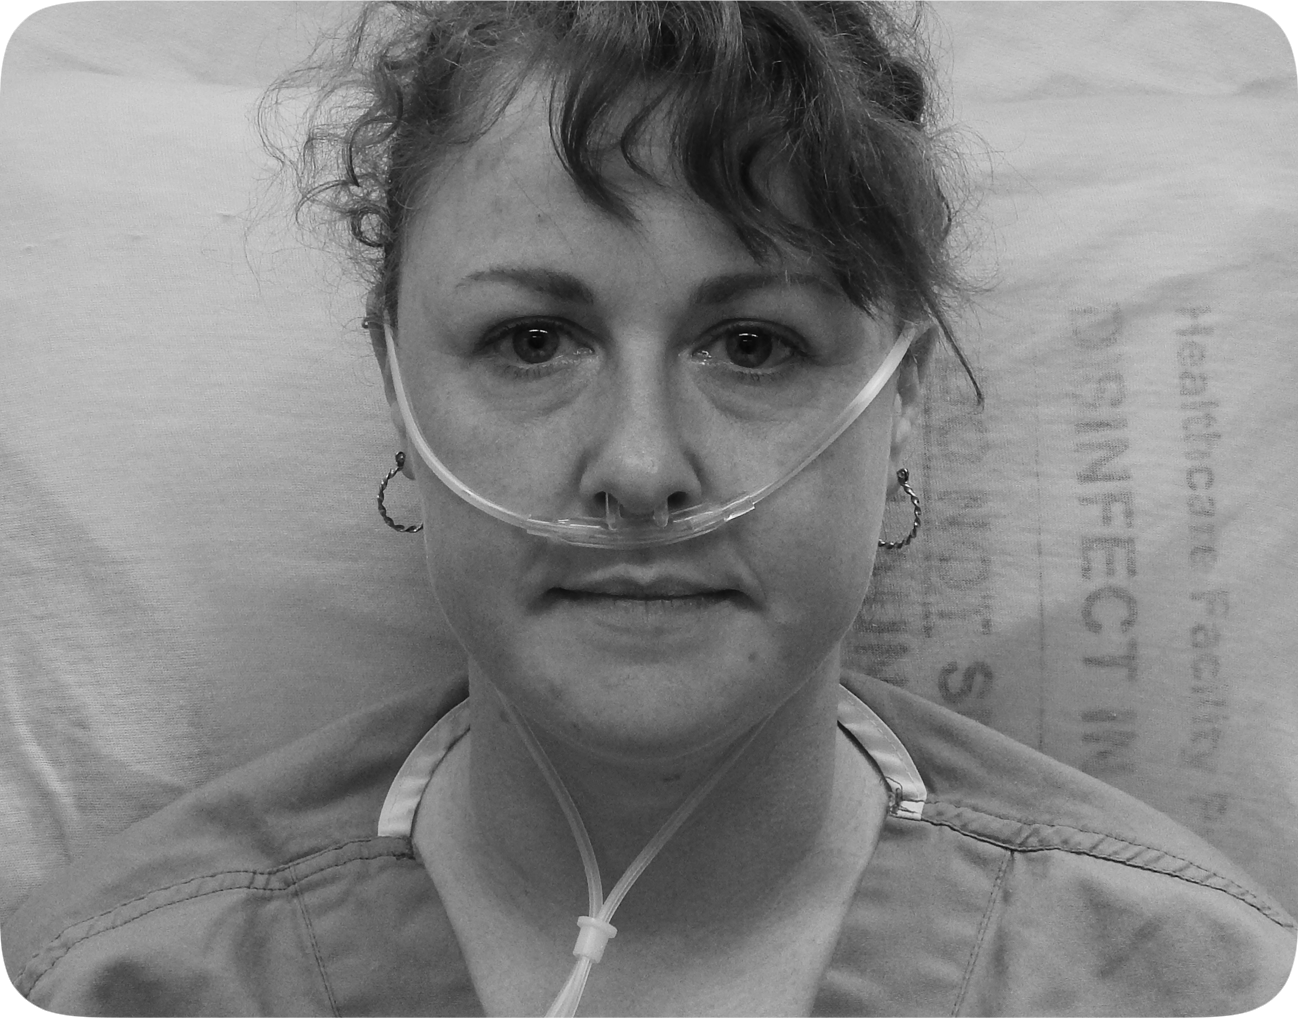 Patient treated for low oxygen